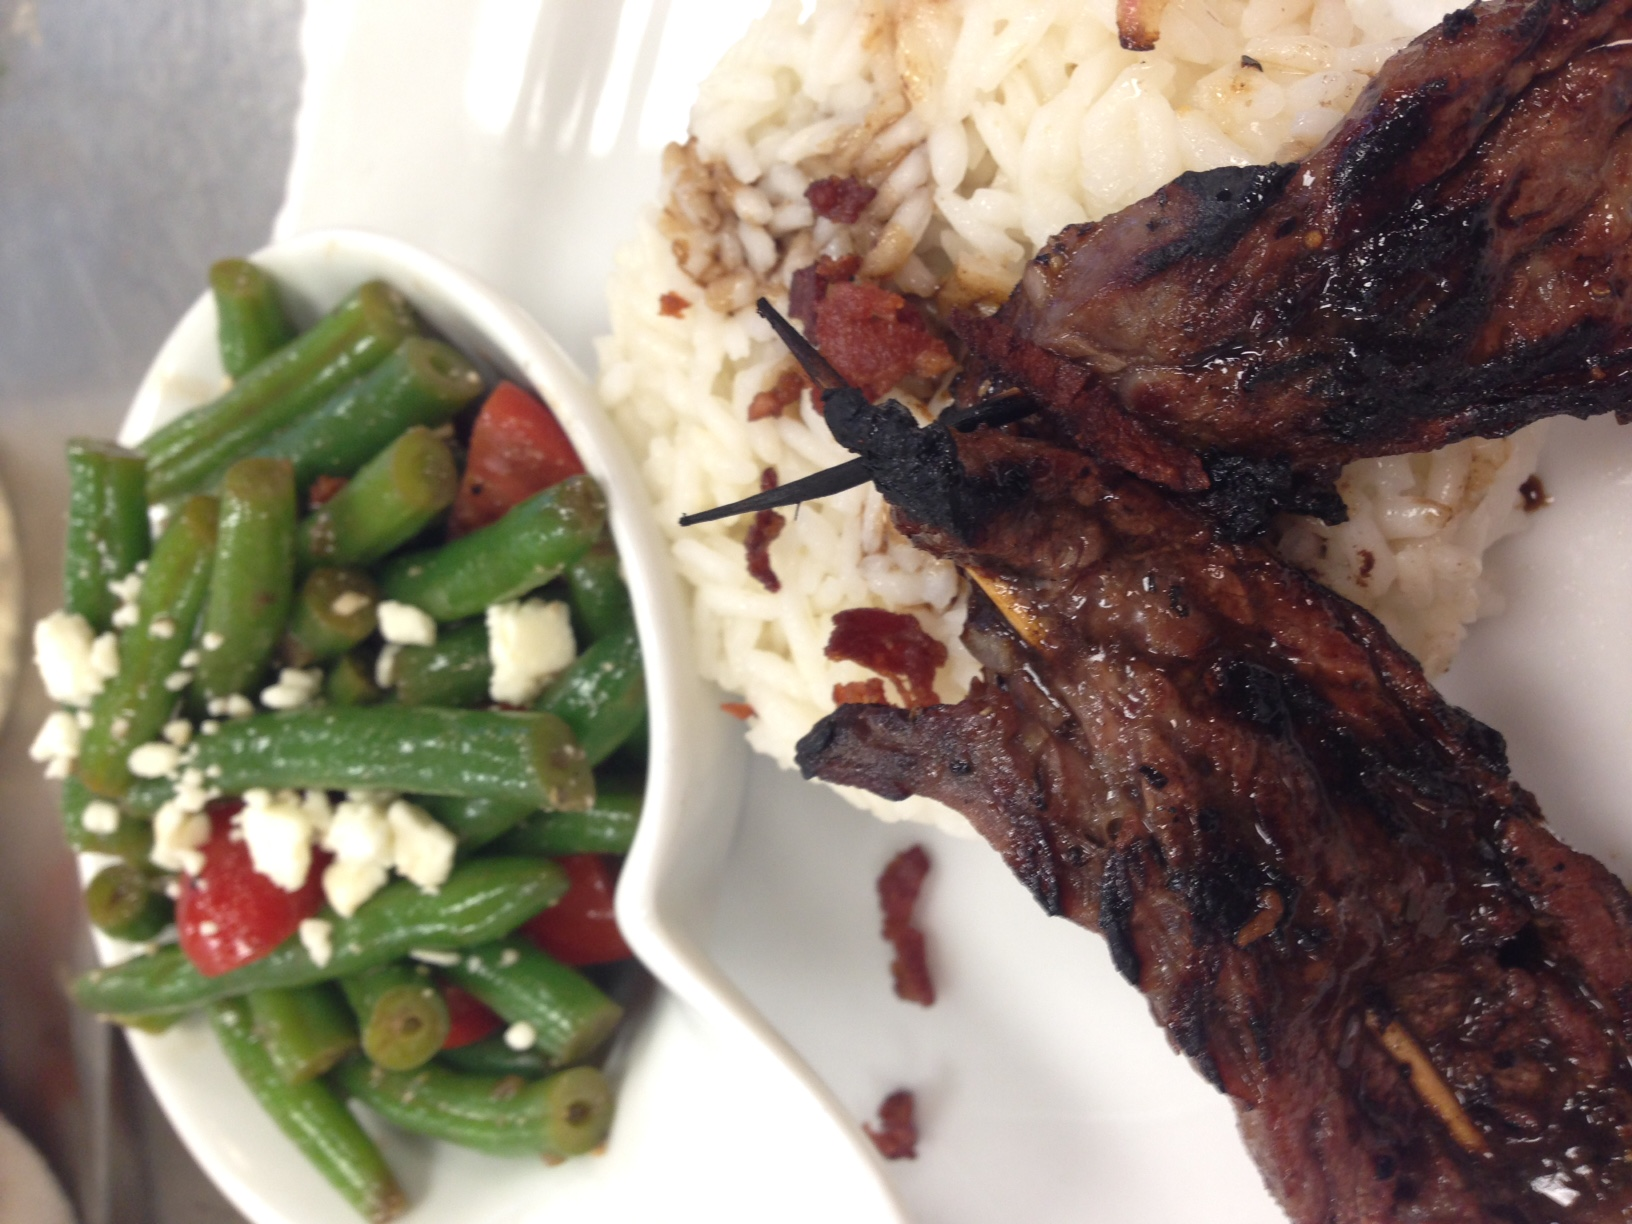 Grilling Week! Grilled flank steak, bacon balsamic reduction, green bean feta salad.